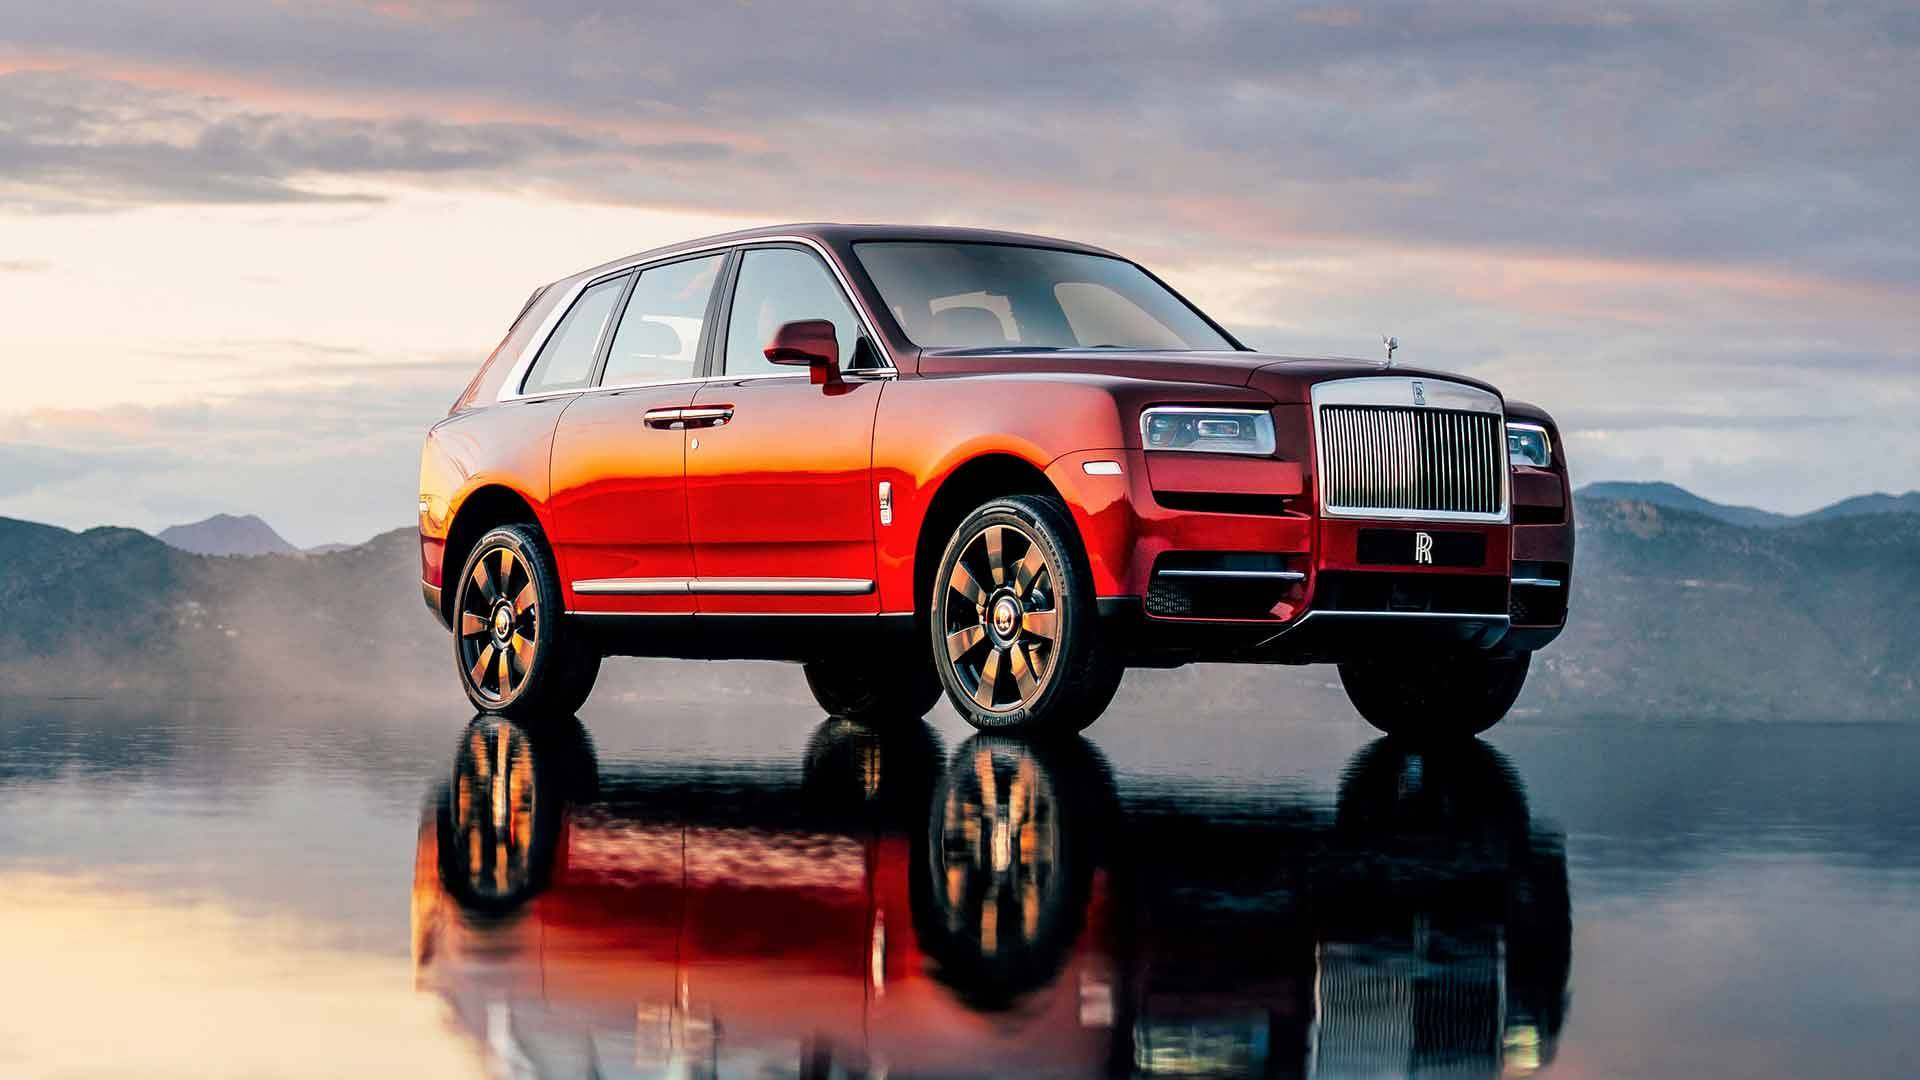 Rolls-Royce Motor Cars, a British luxury vehicle manufacturer, has finally revealed its first-ever sports utility vehicle